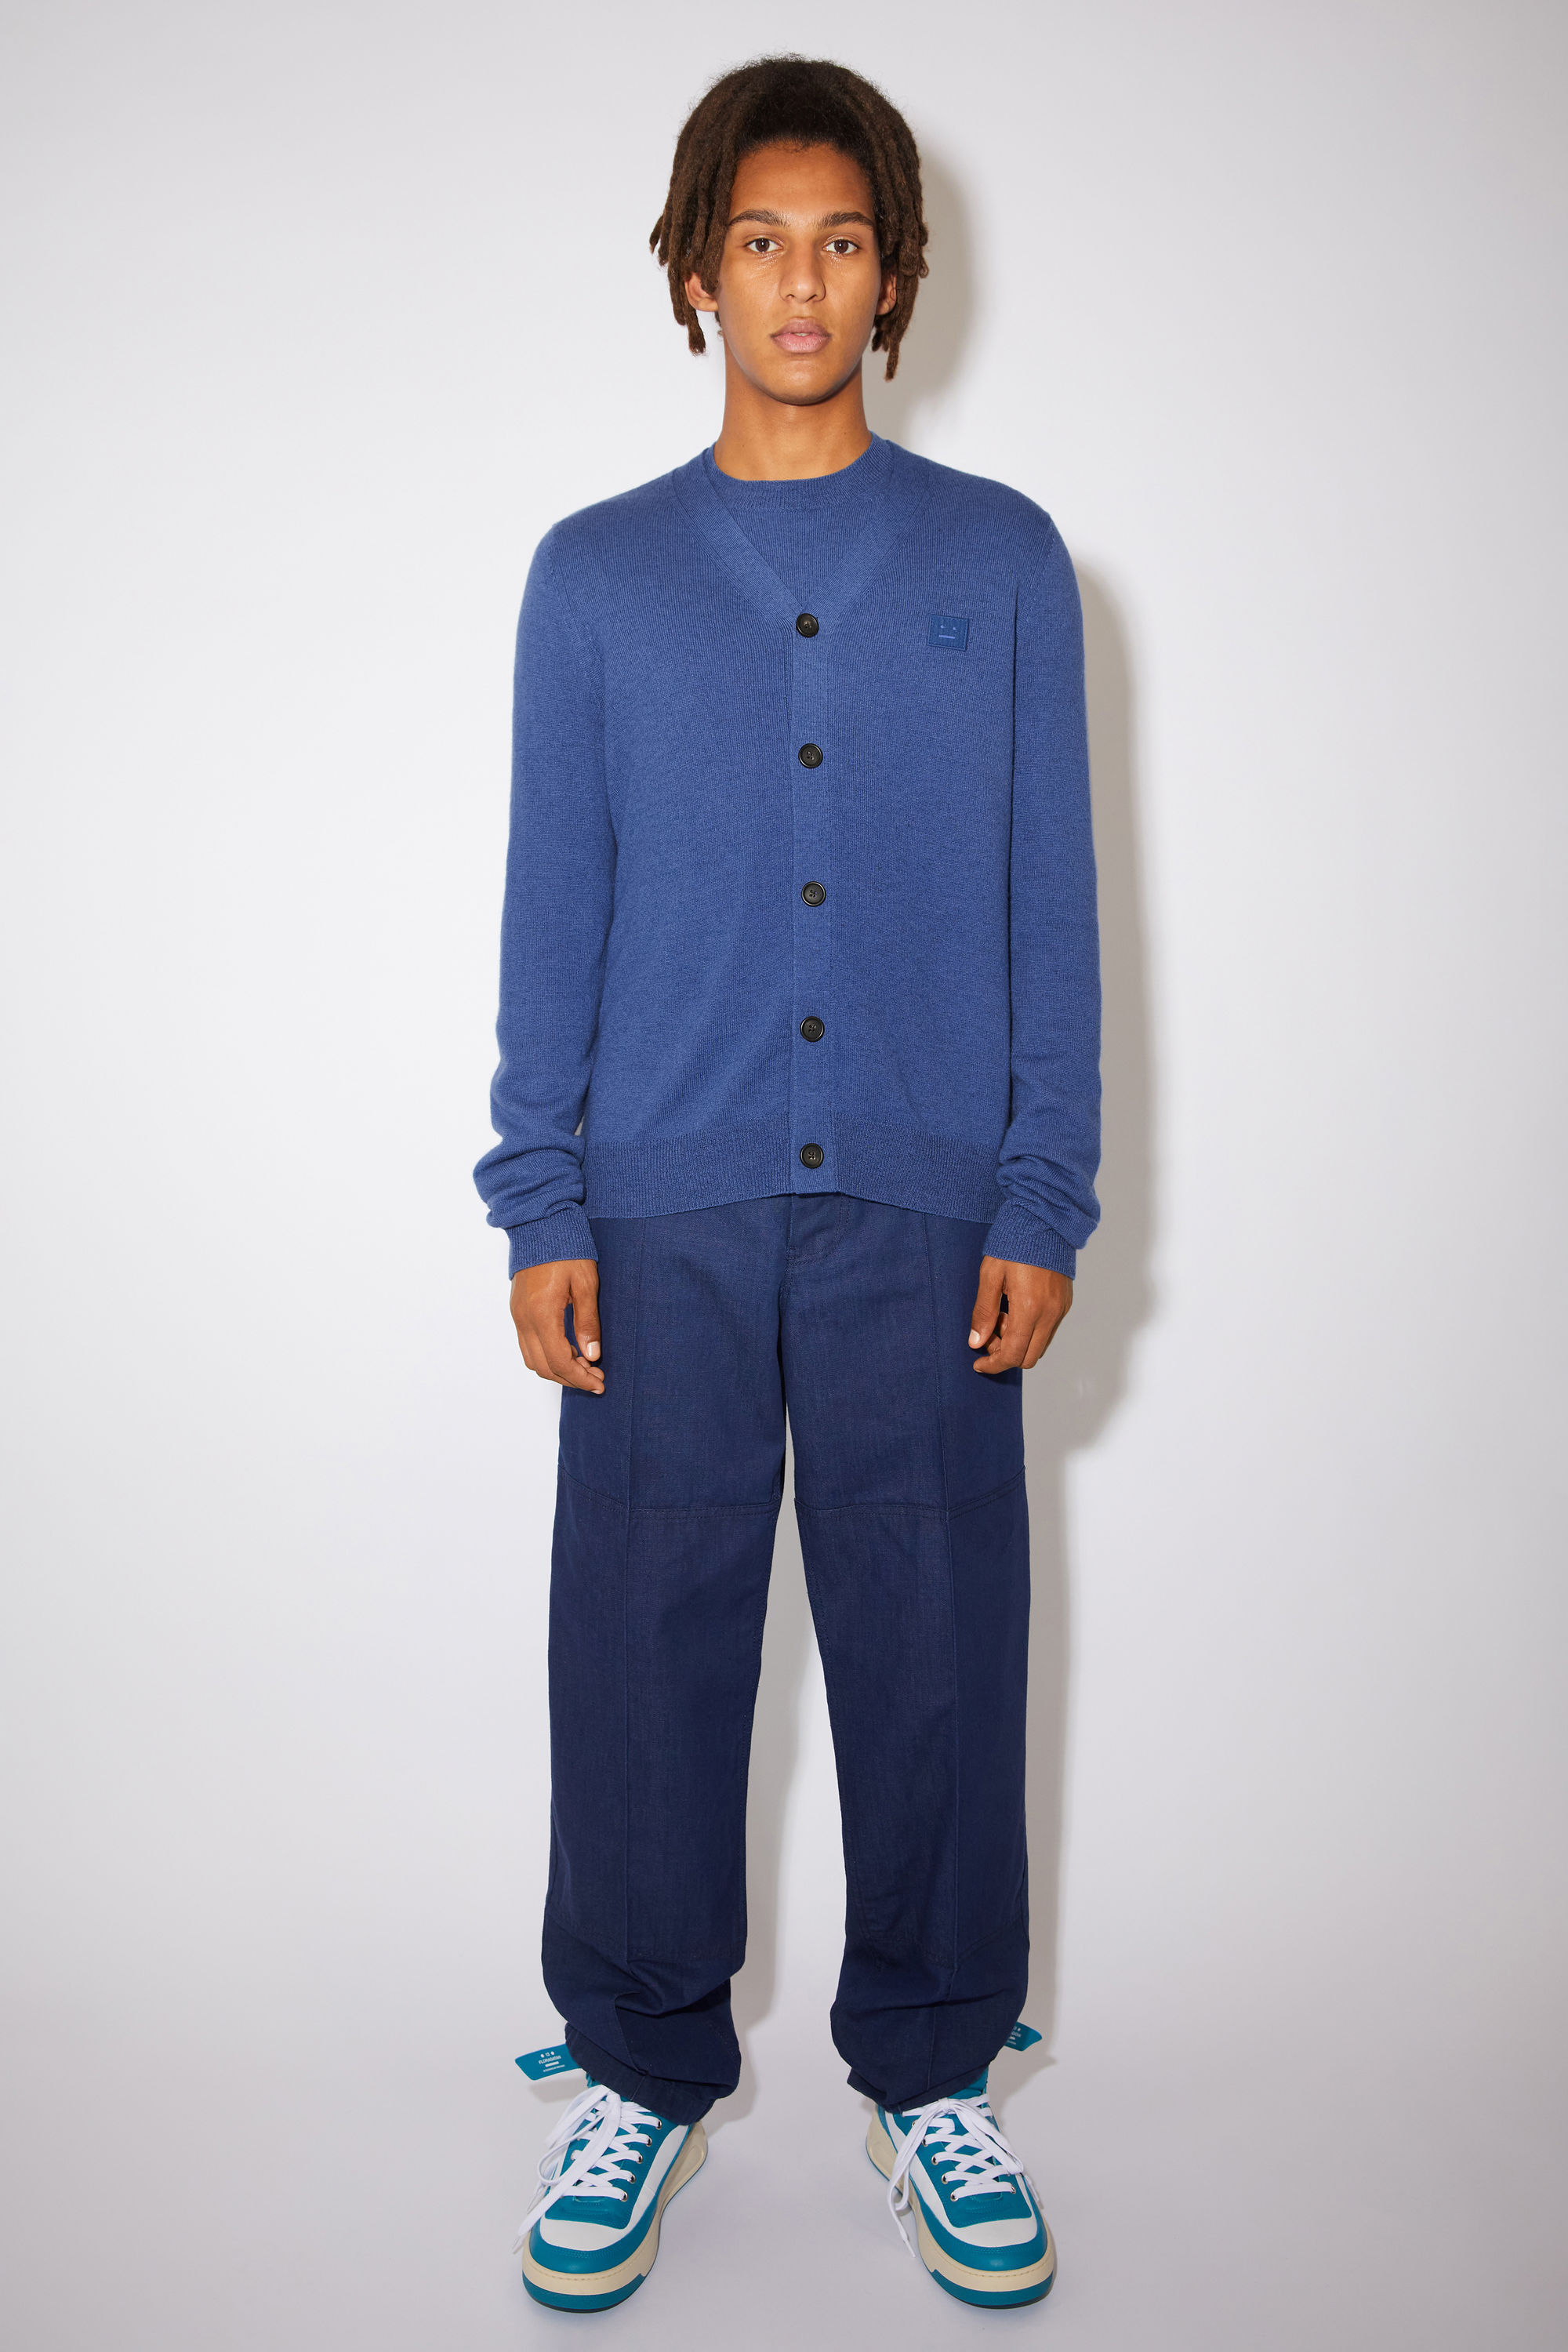 Acne Studios dusty blue v-neck cardigan sweater is made from wool with a face logo patch and ribbed details. 001